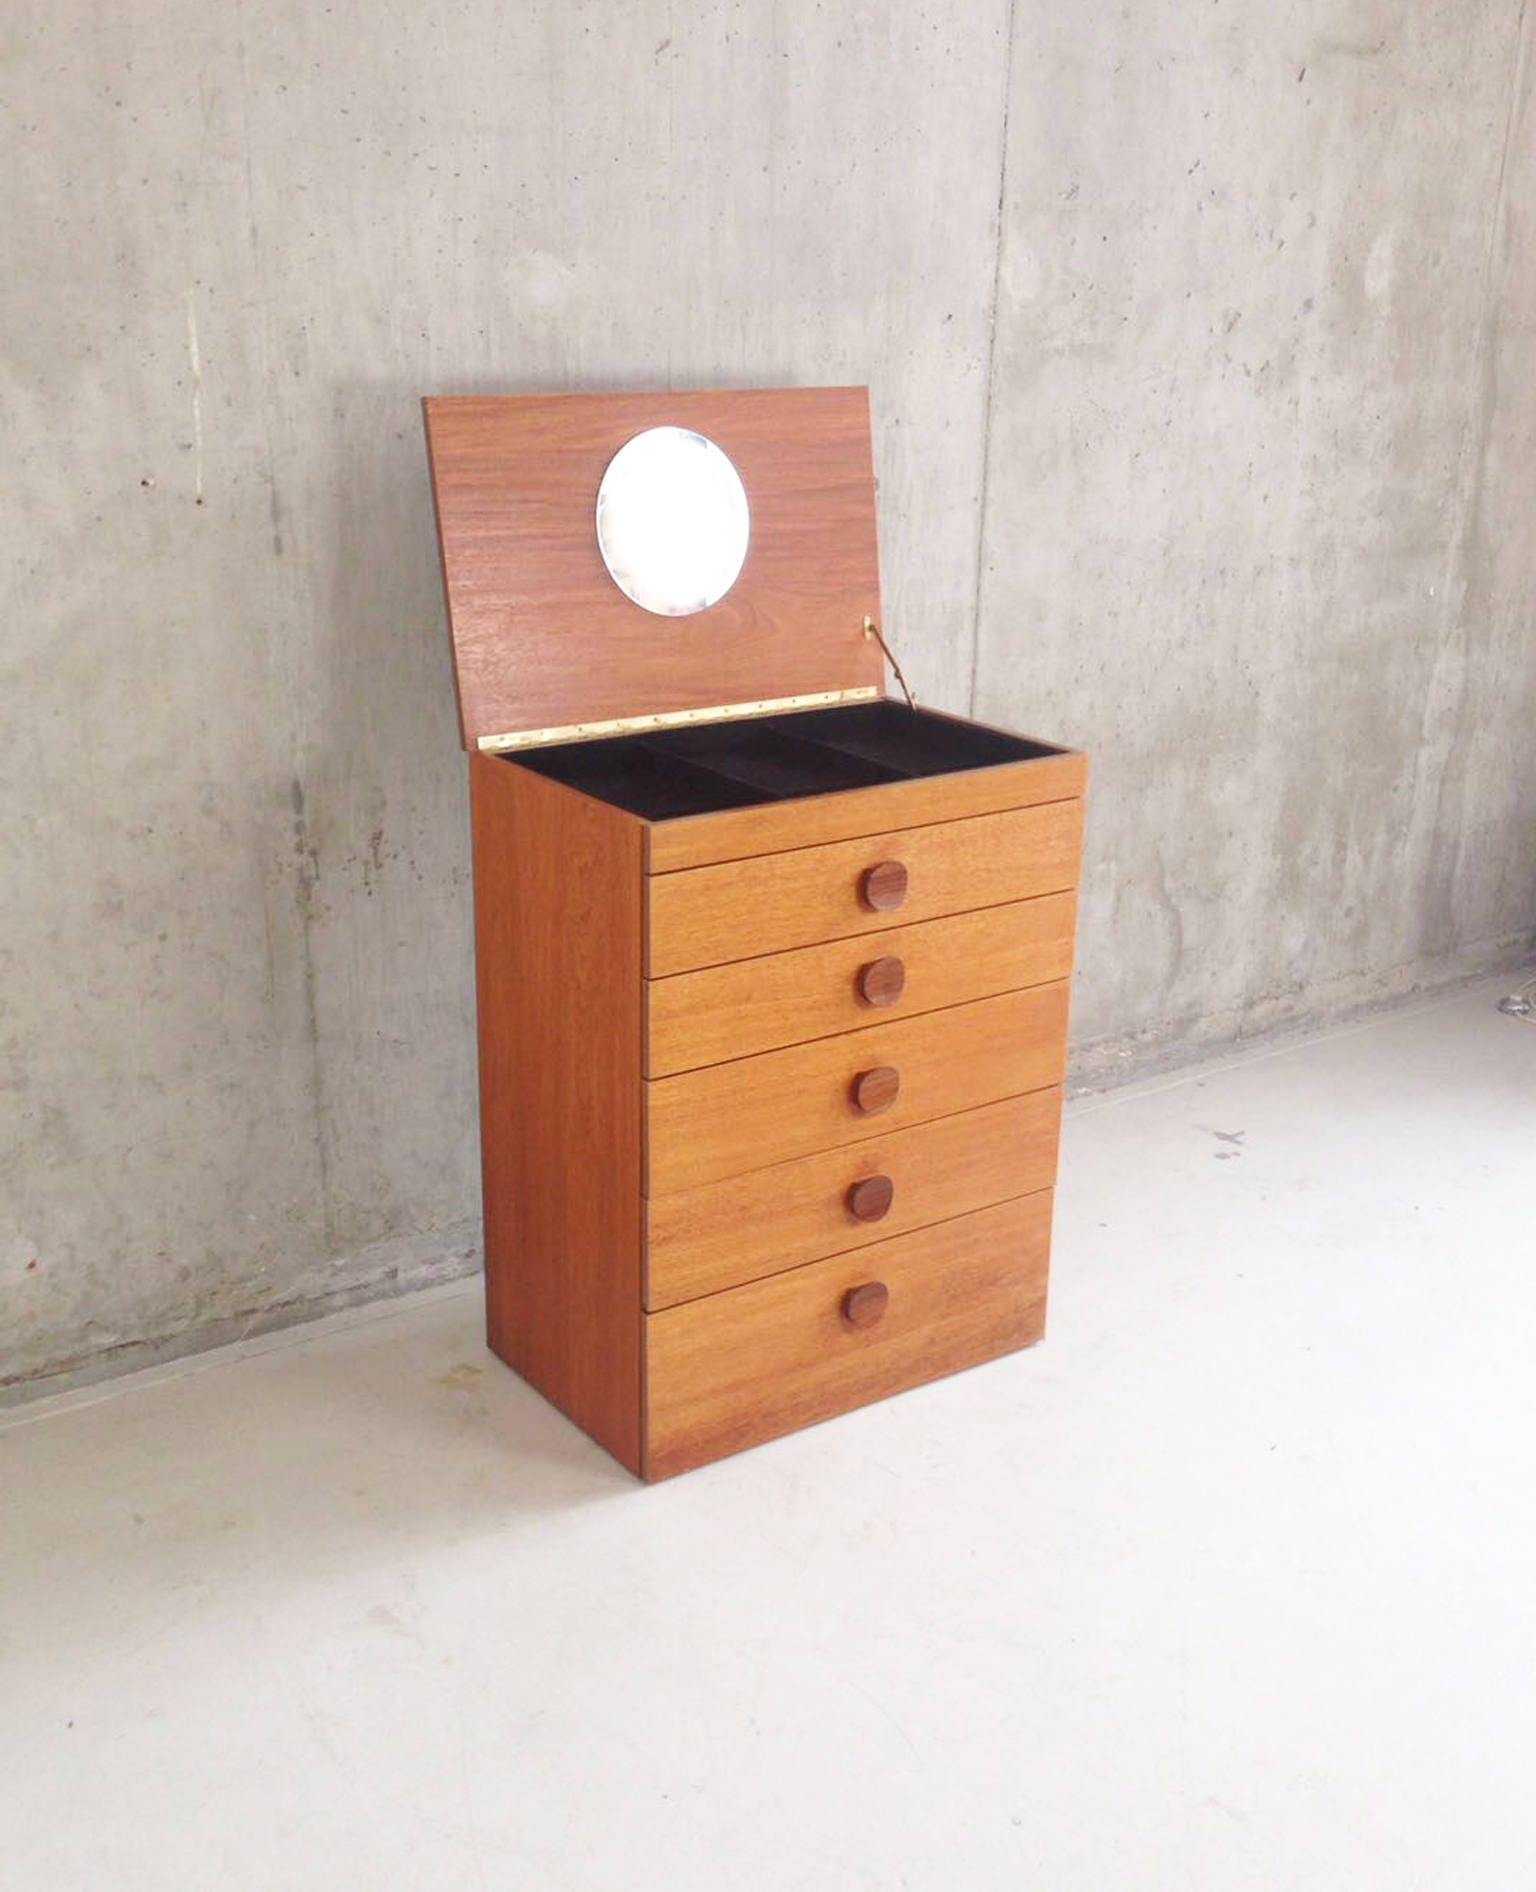 Original 1970s mid century teak chest of drawers with lift up mirror and jewellery tray